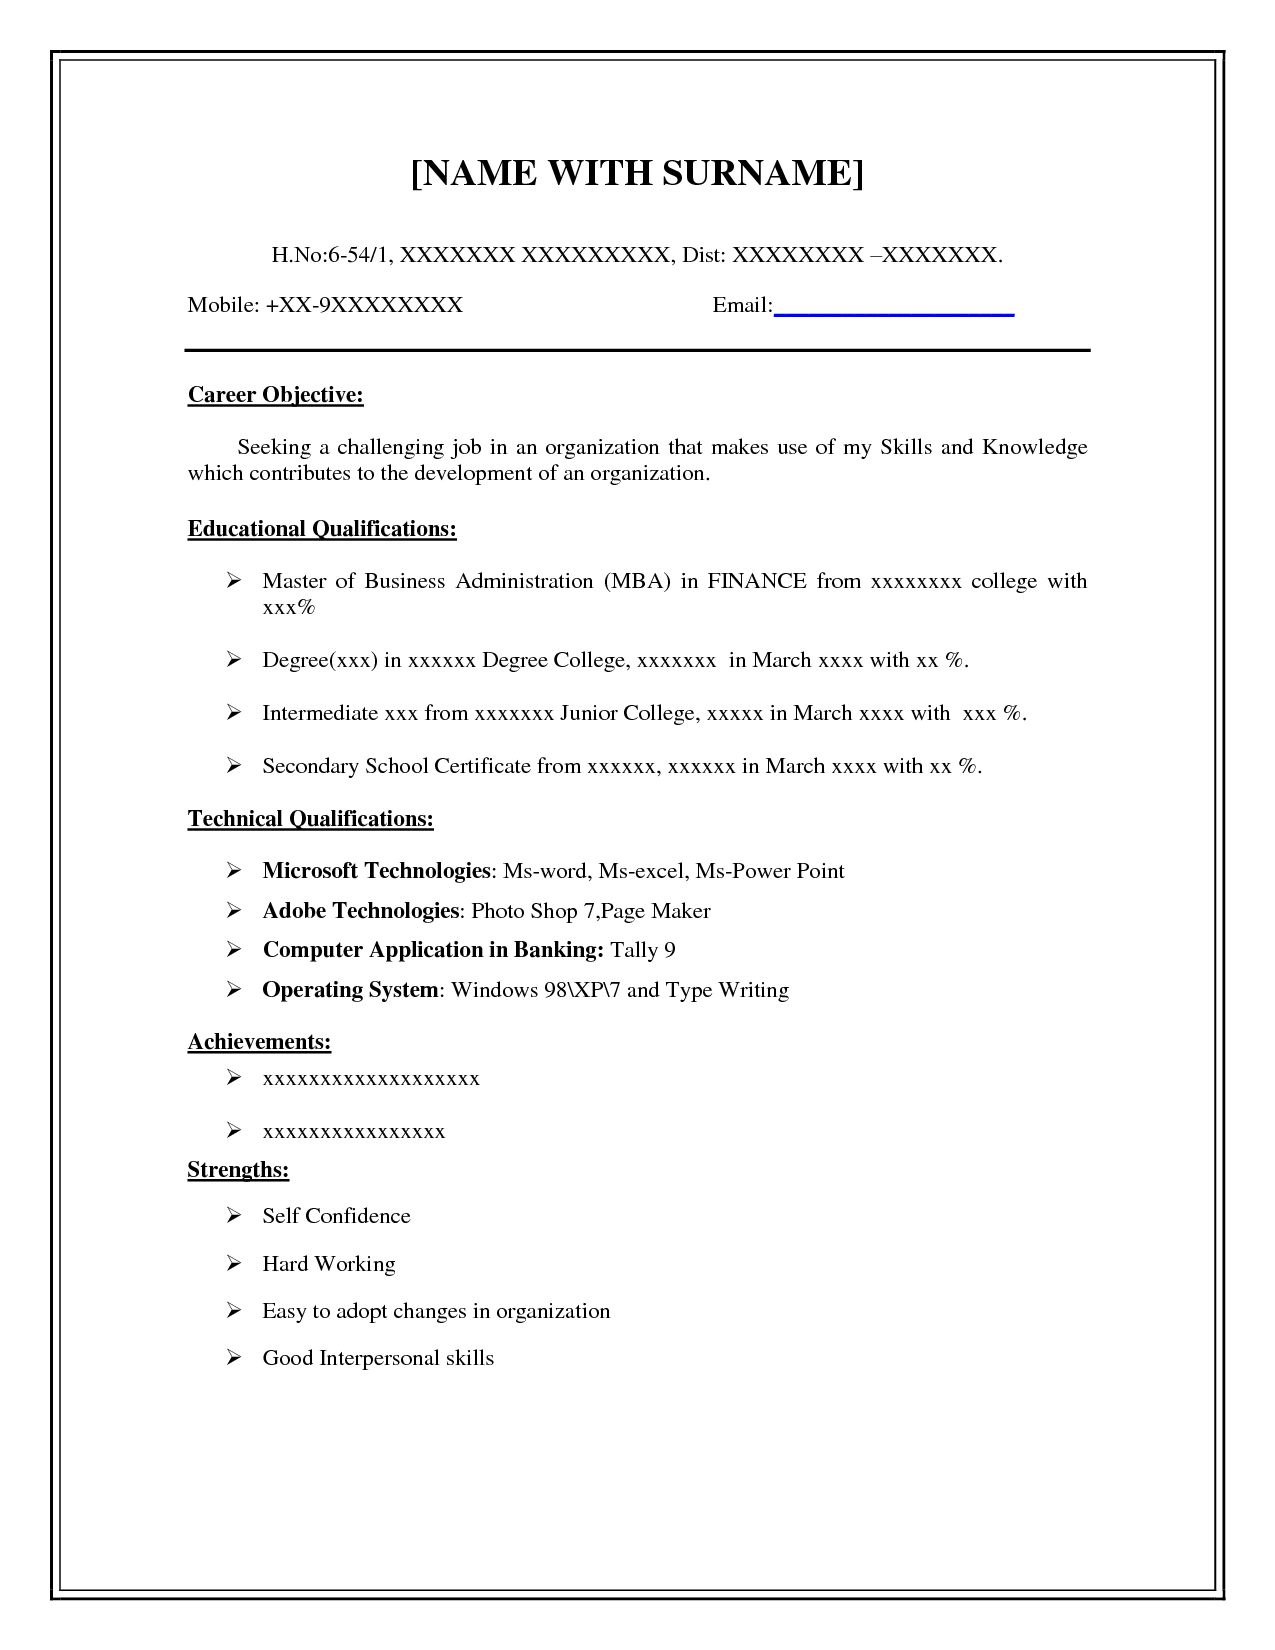 Easy And Free Resume Templates Freeresumetemplates Resume Templates Basic Resume Resume Template Free Simple Resume Template